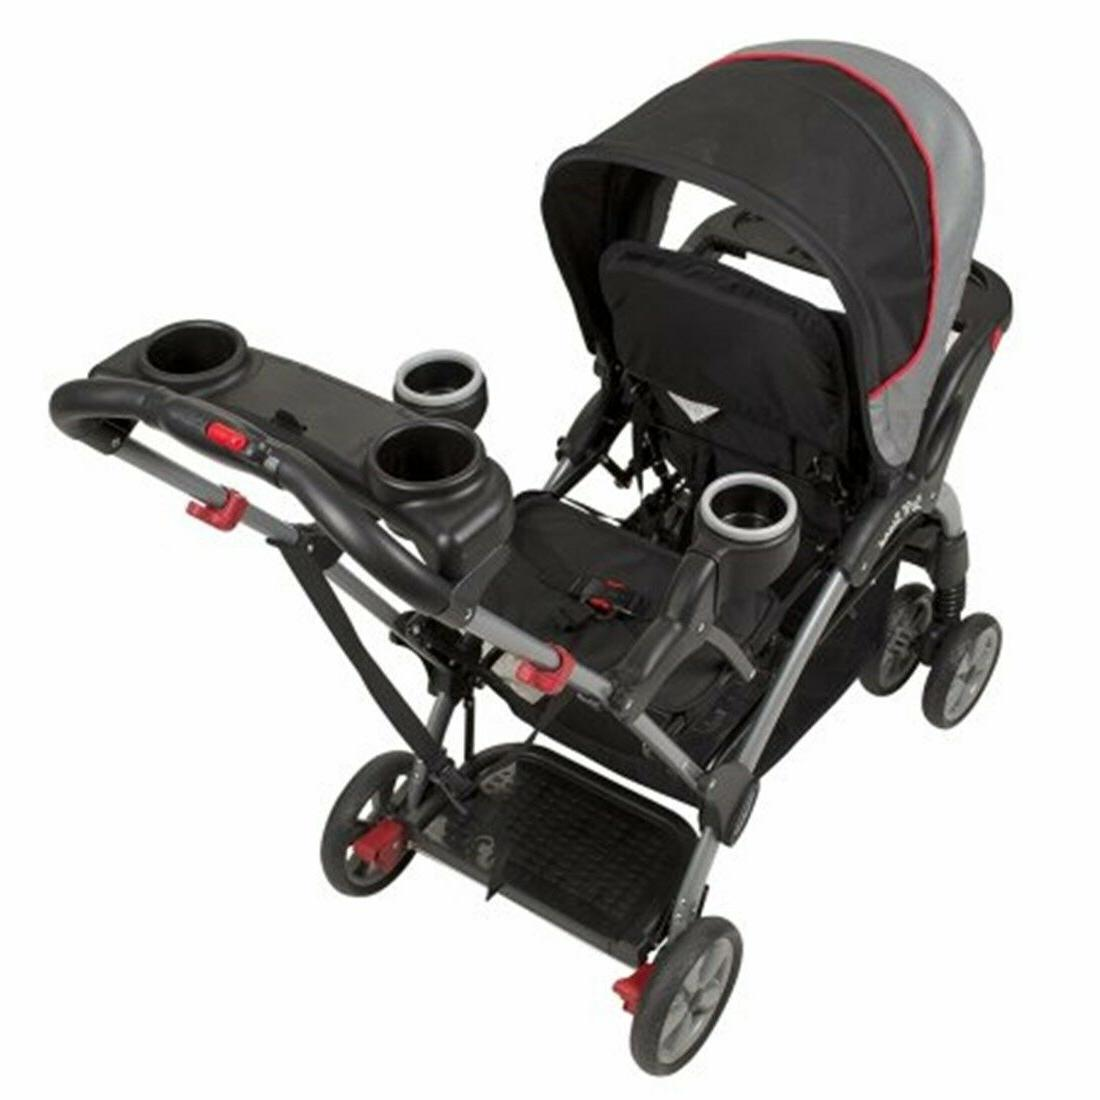 Baby Trend Sit Stand Double Stroller Car Seat Set